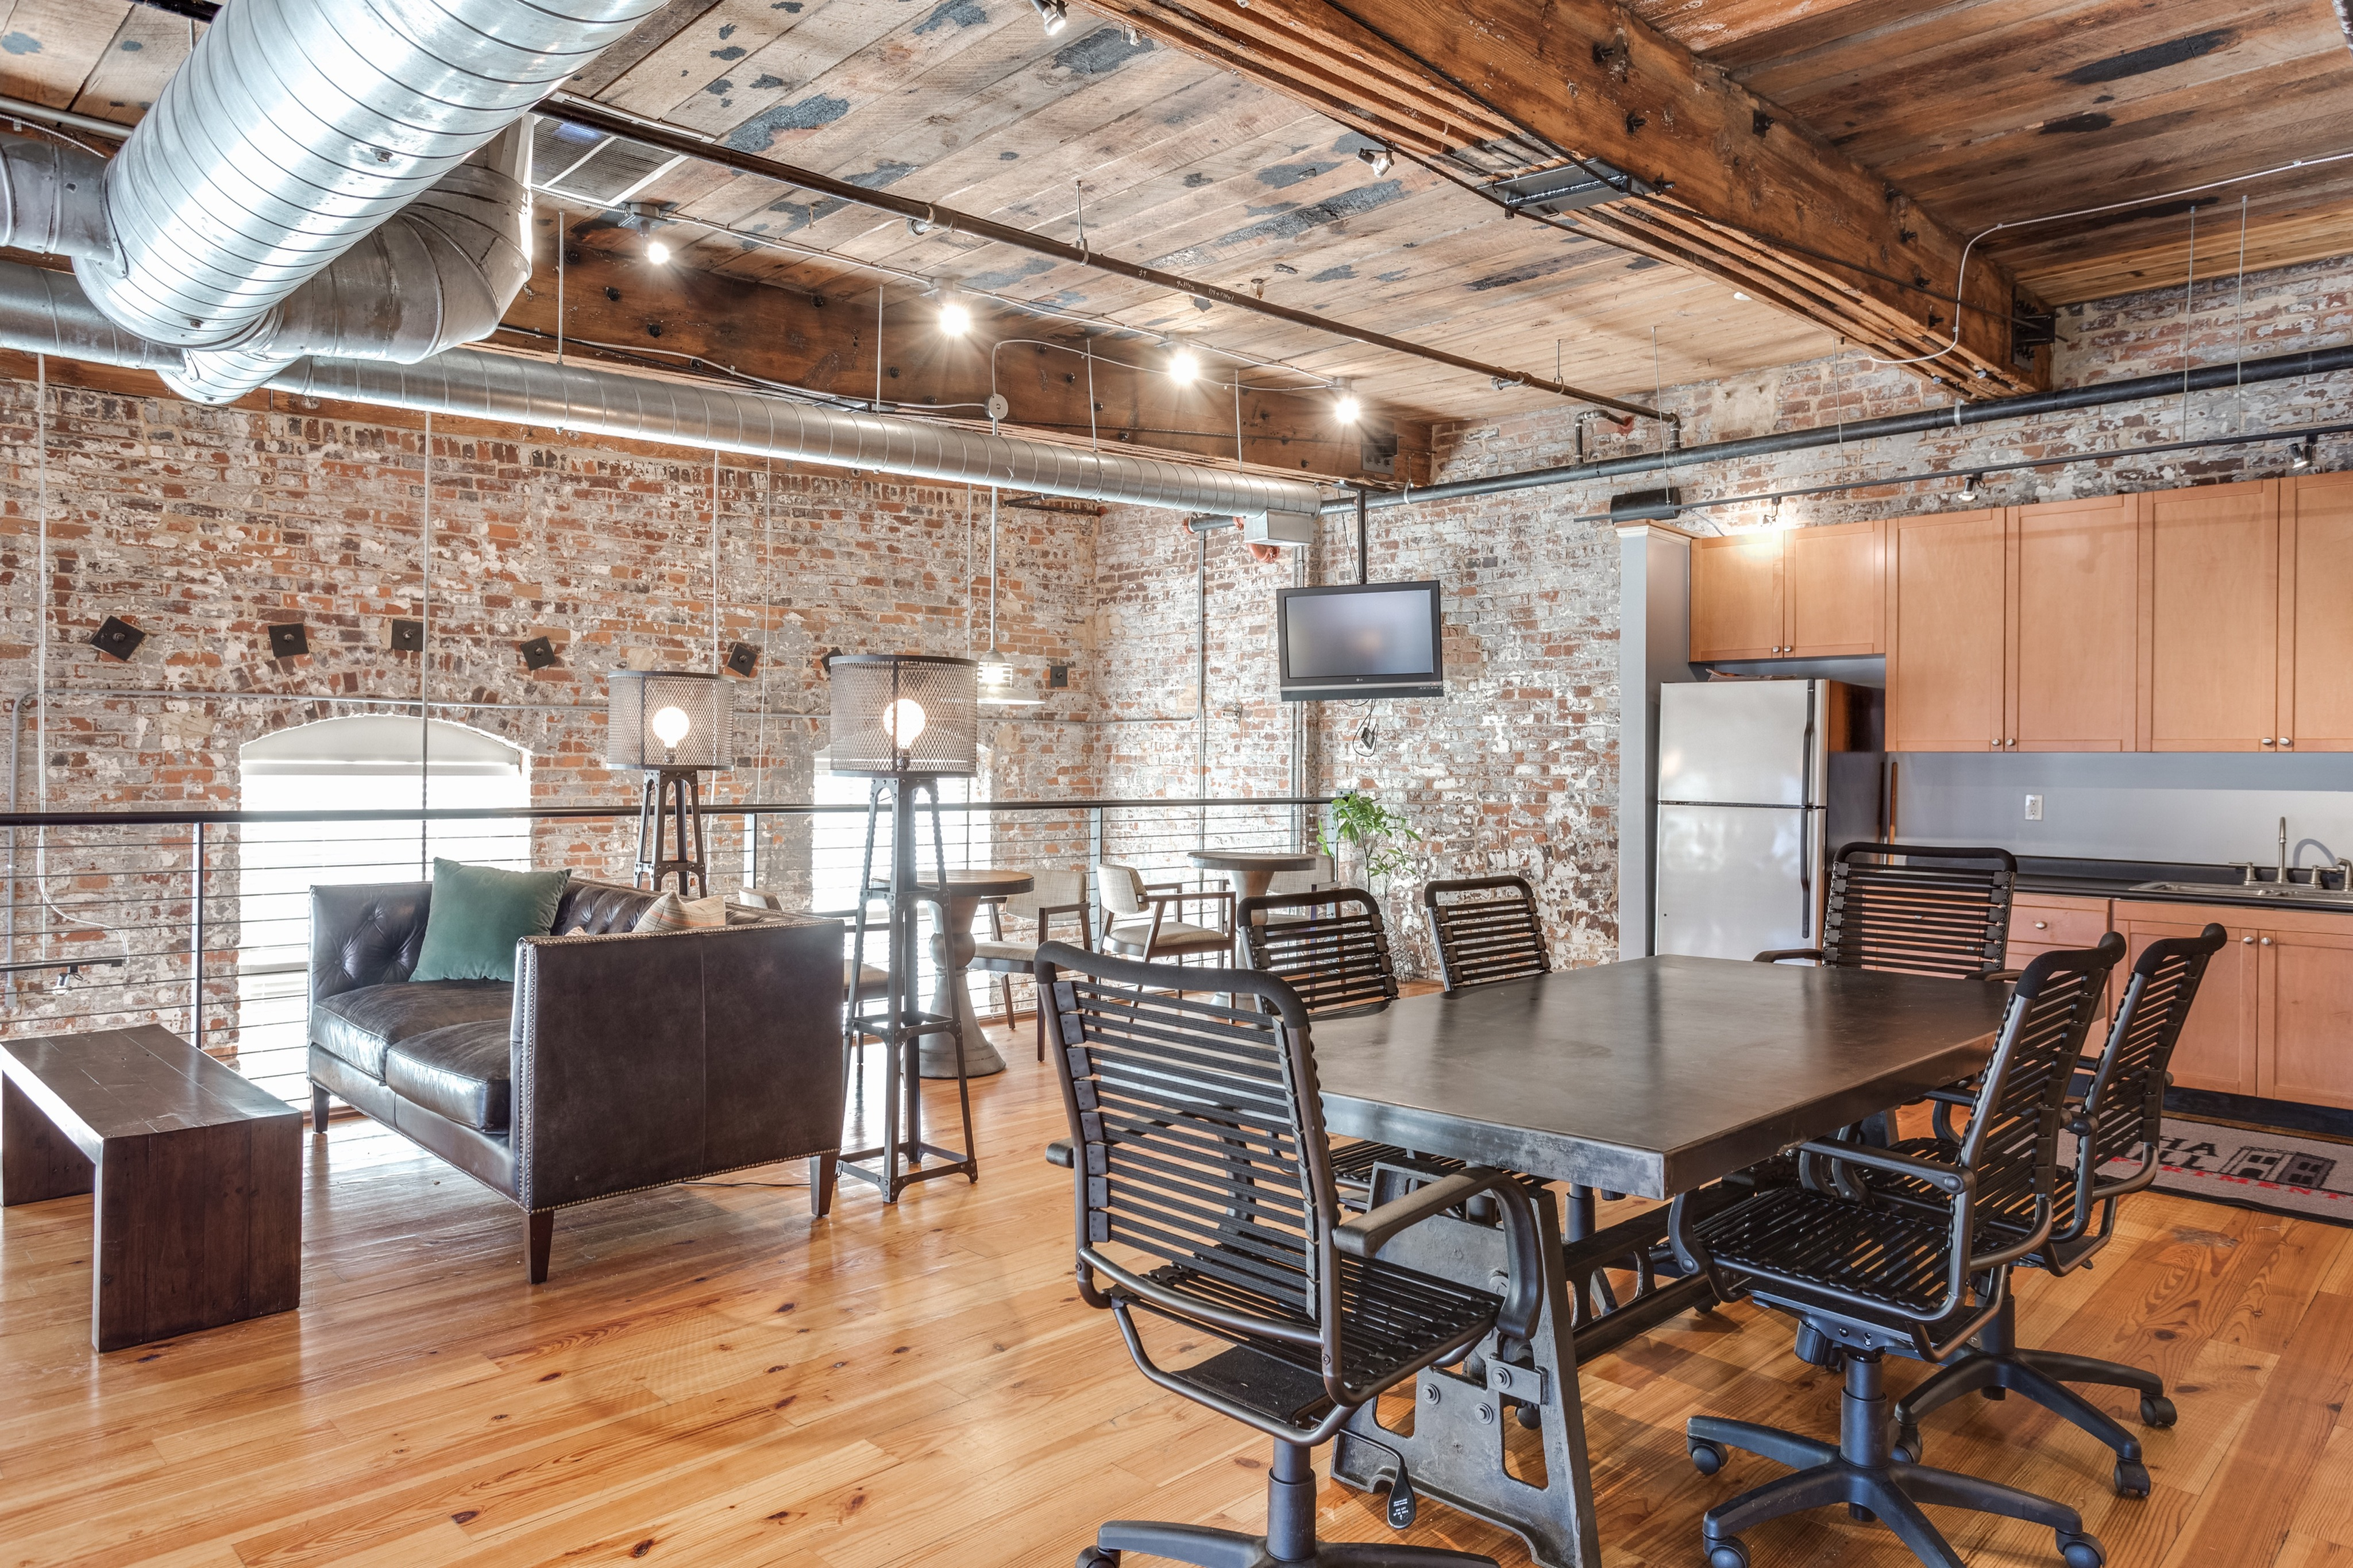 View of Business Center, Showing Meeting Table, Chairs, Sitting Areas, and Community Kitchen at Alpha Mill Apartments